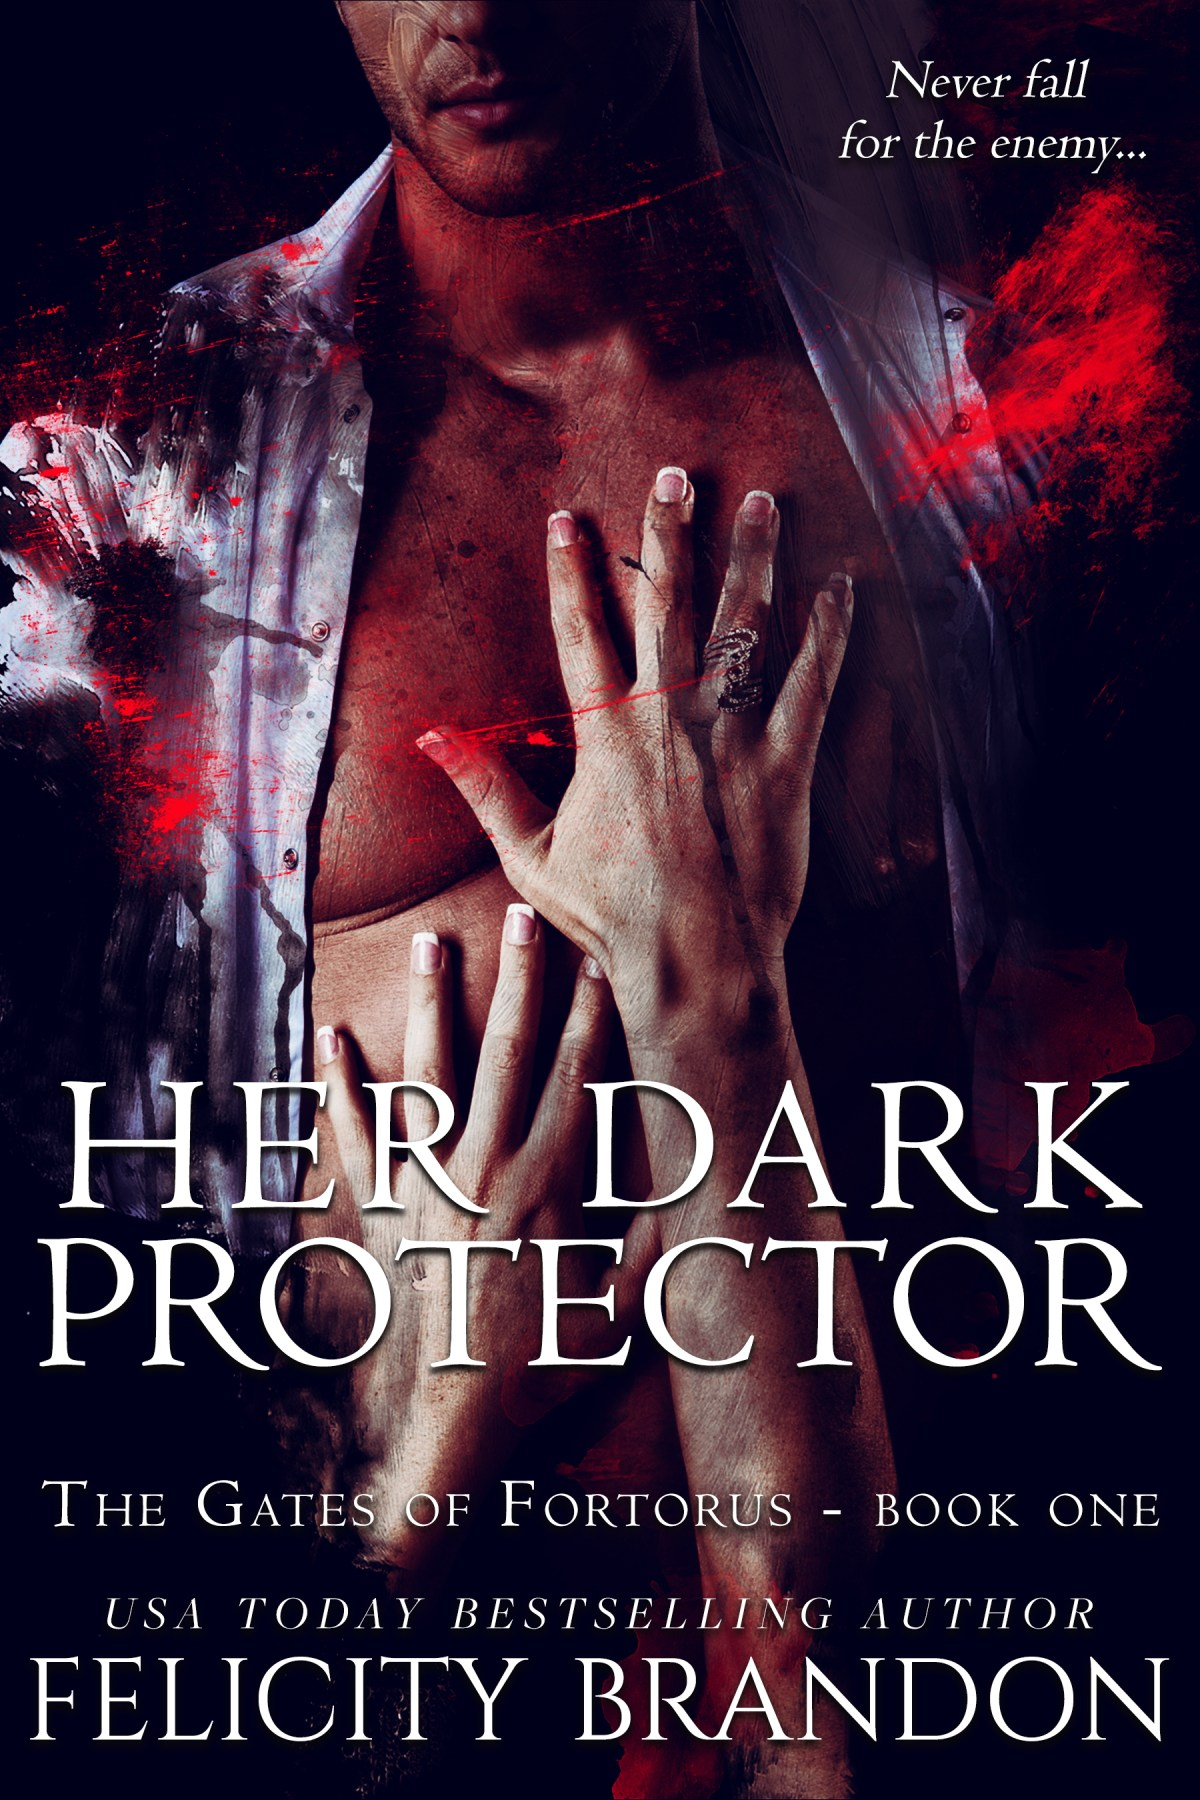 Her Dark Protector—ONLY 99c!